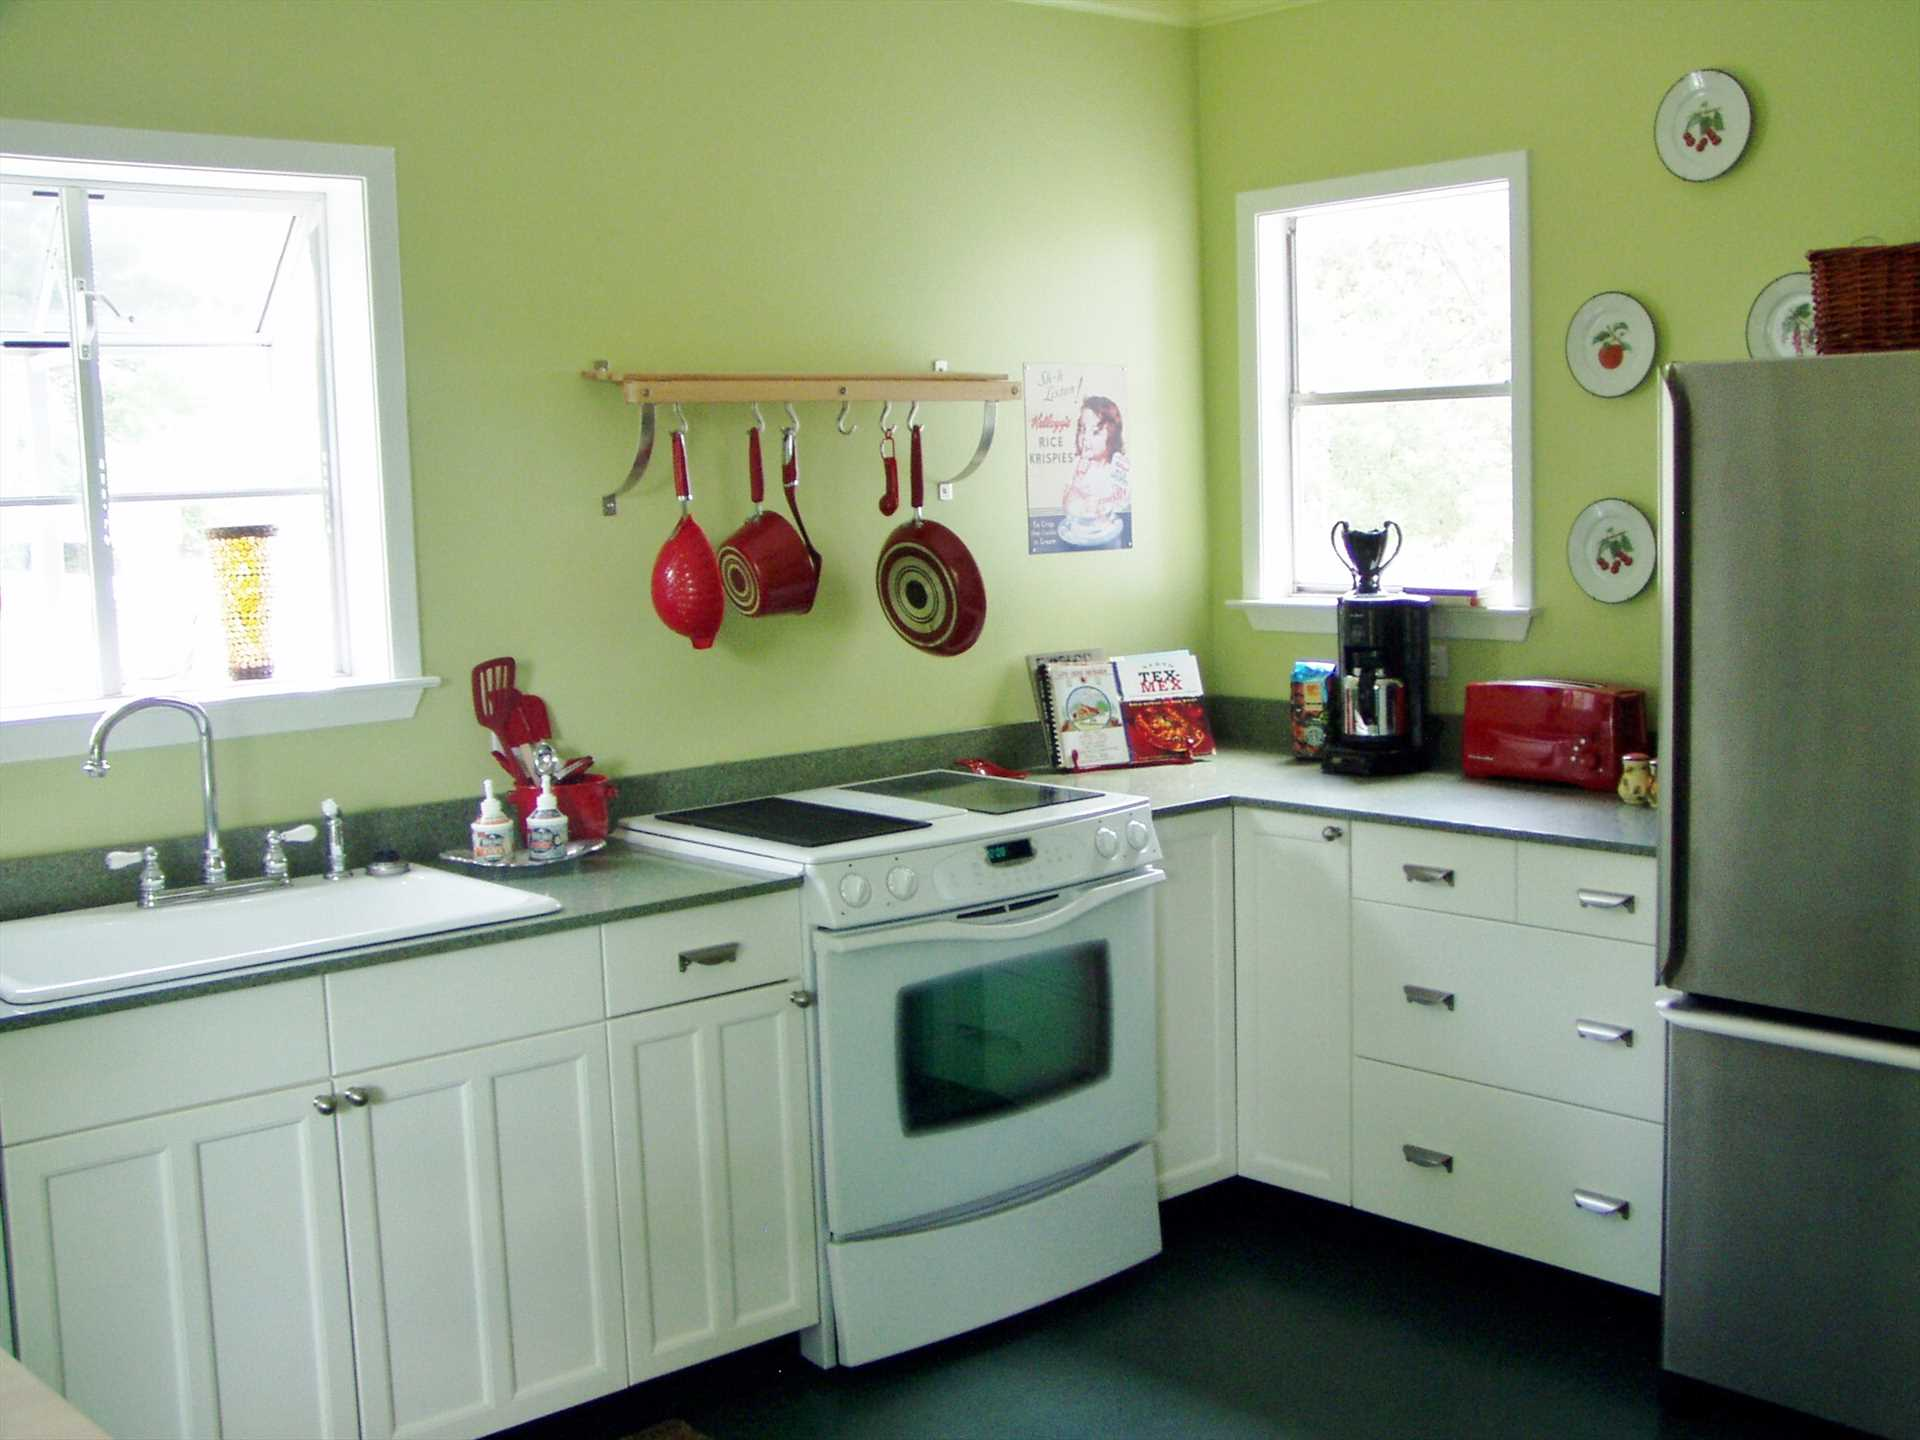 We couldn't call it Granny's place if it didn't have a full country kitchen!